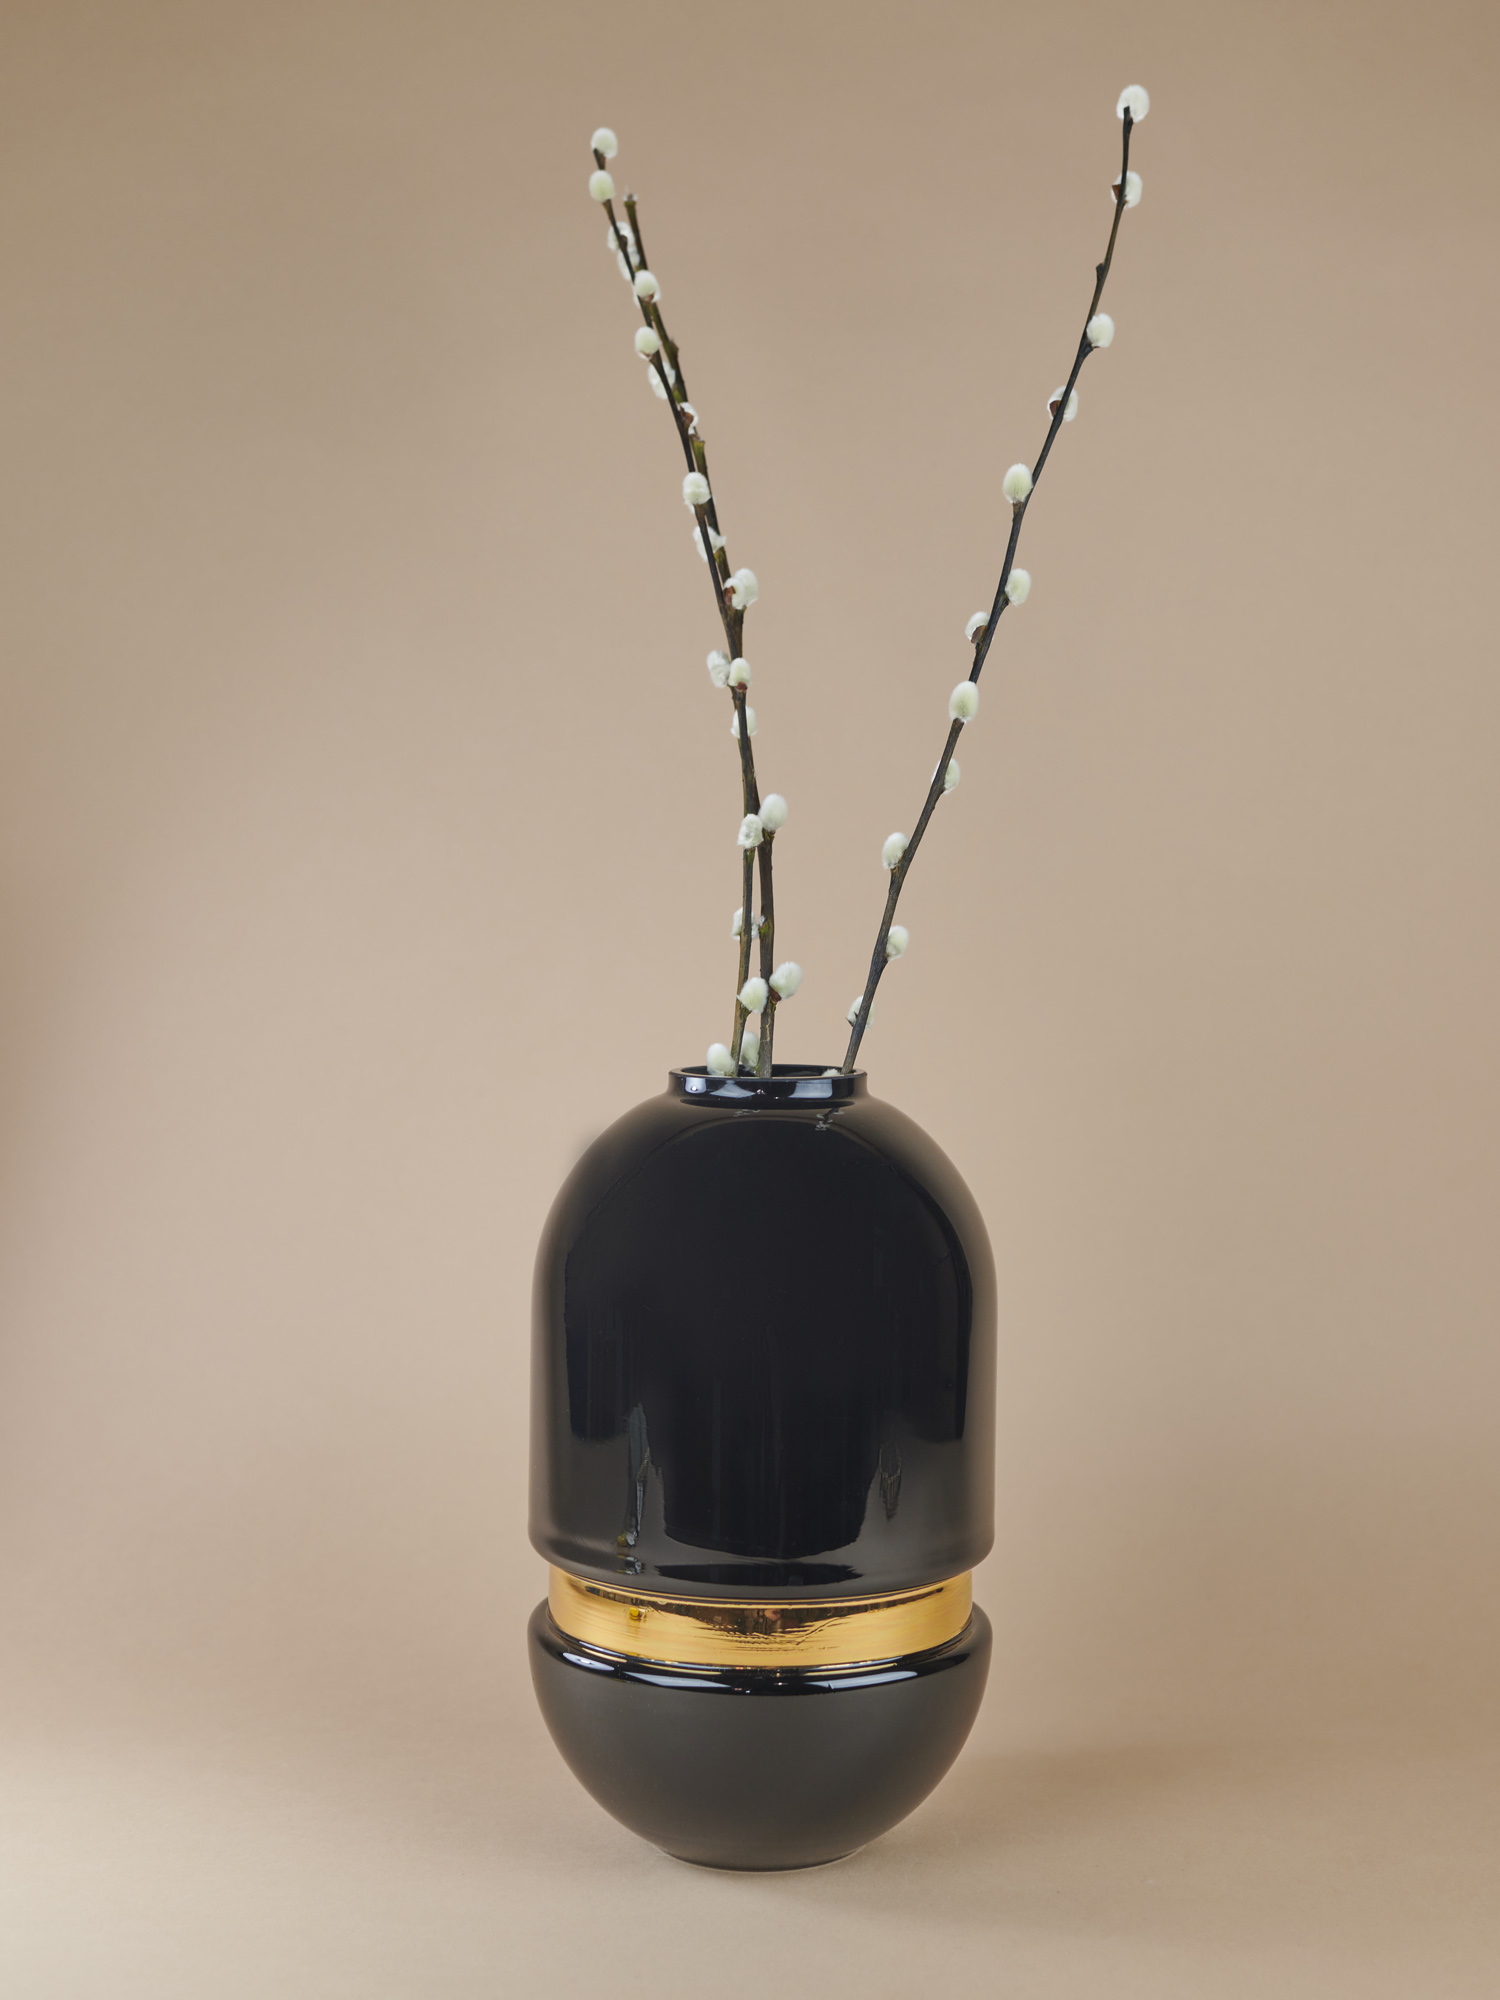 Black glass vase with golden stripe in the middle by Pavel Vytisk